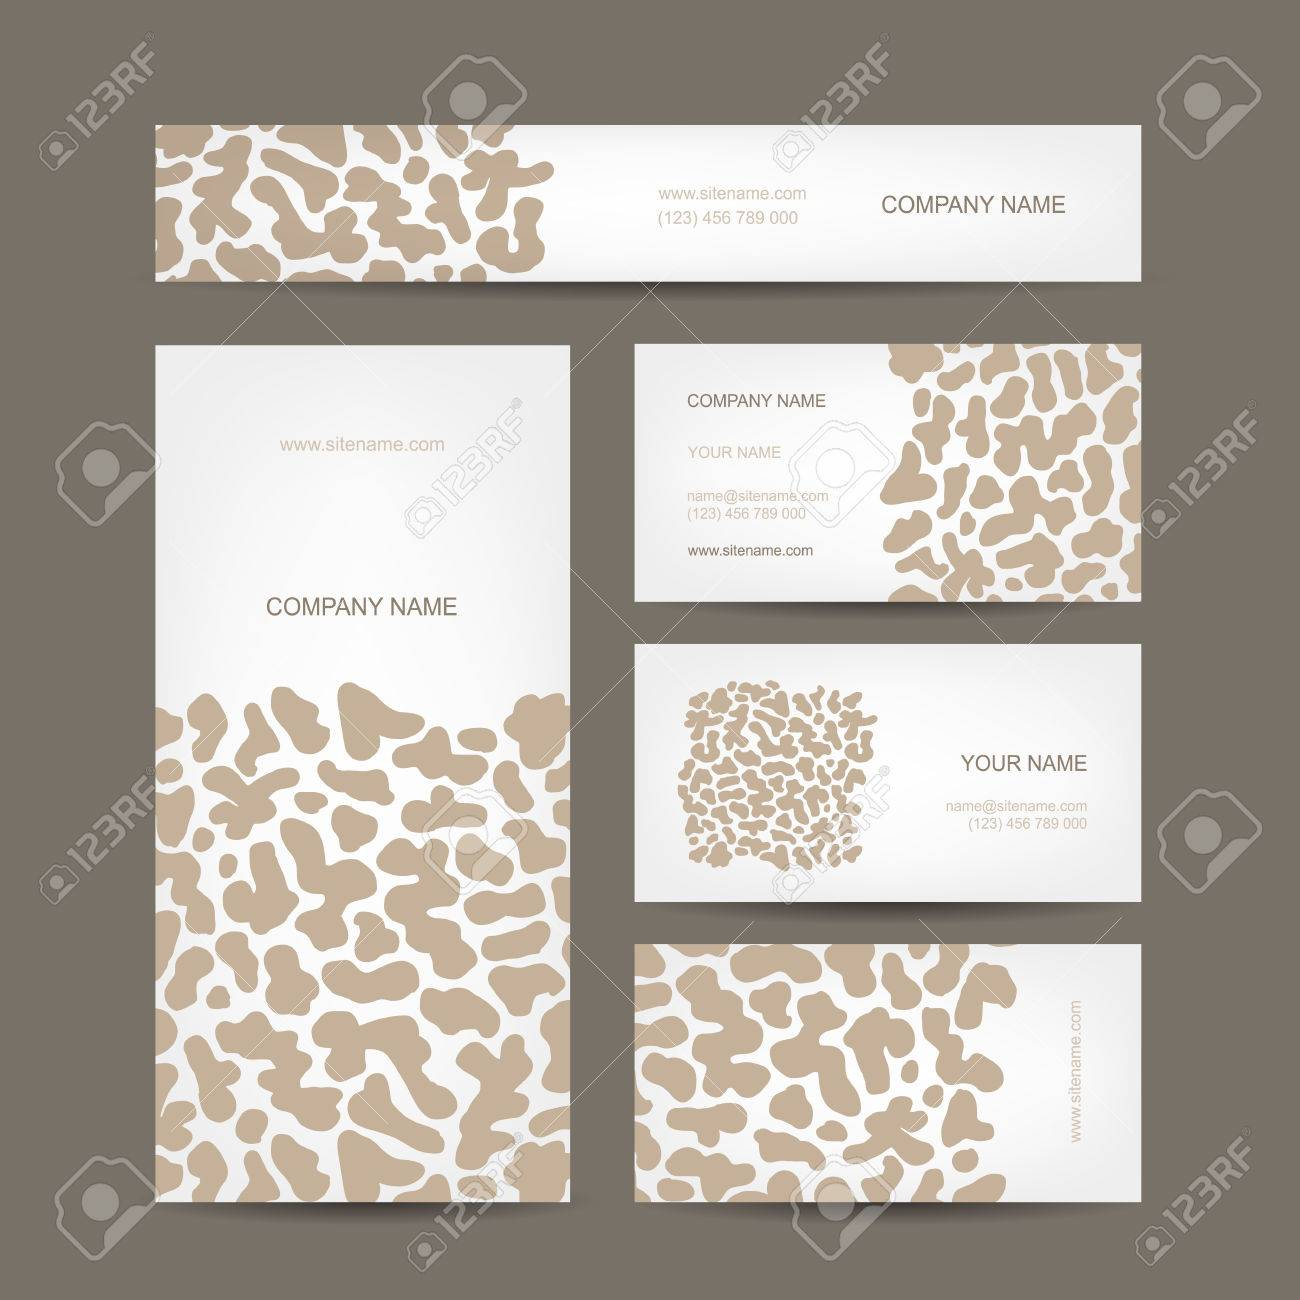 Zebra Print Business Cards Design Images - Card Design And Card Template